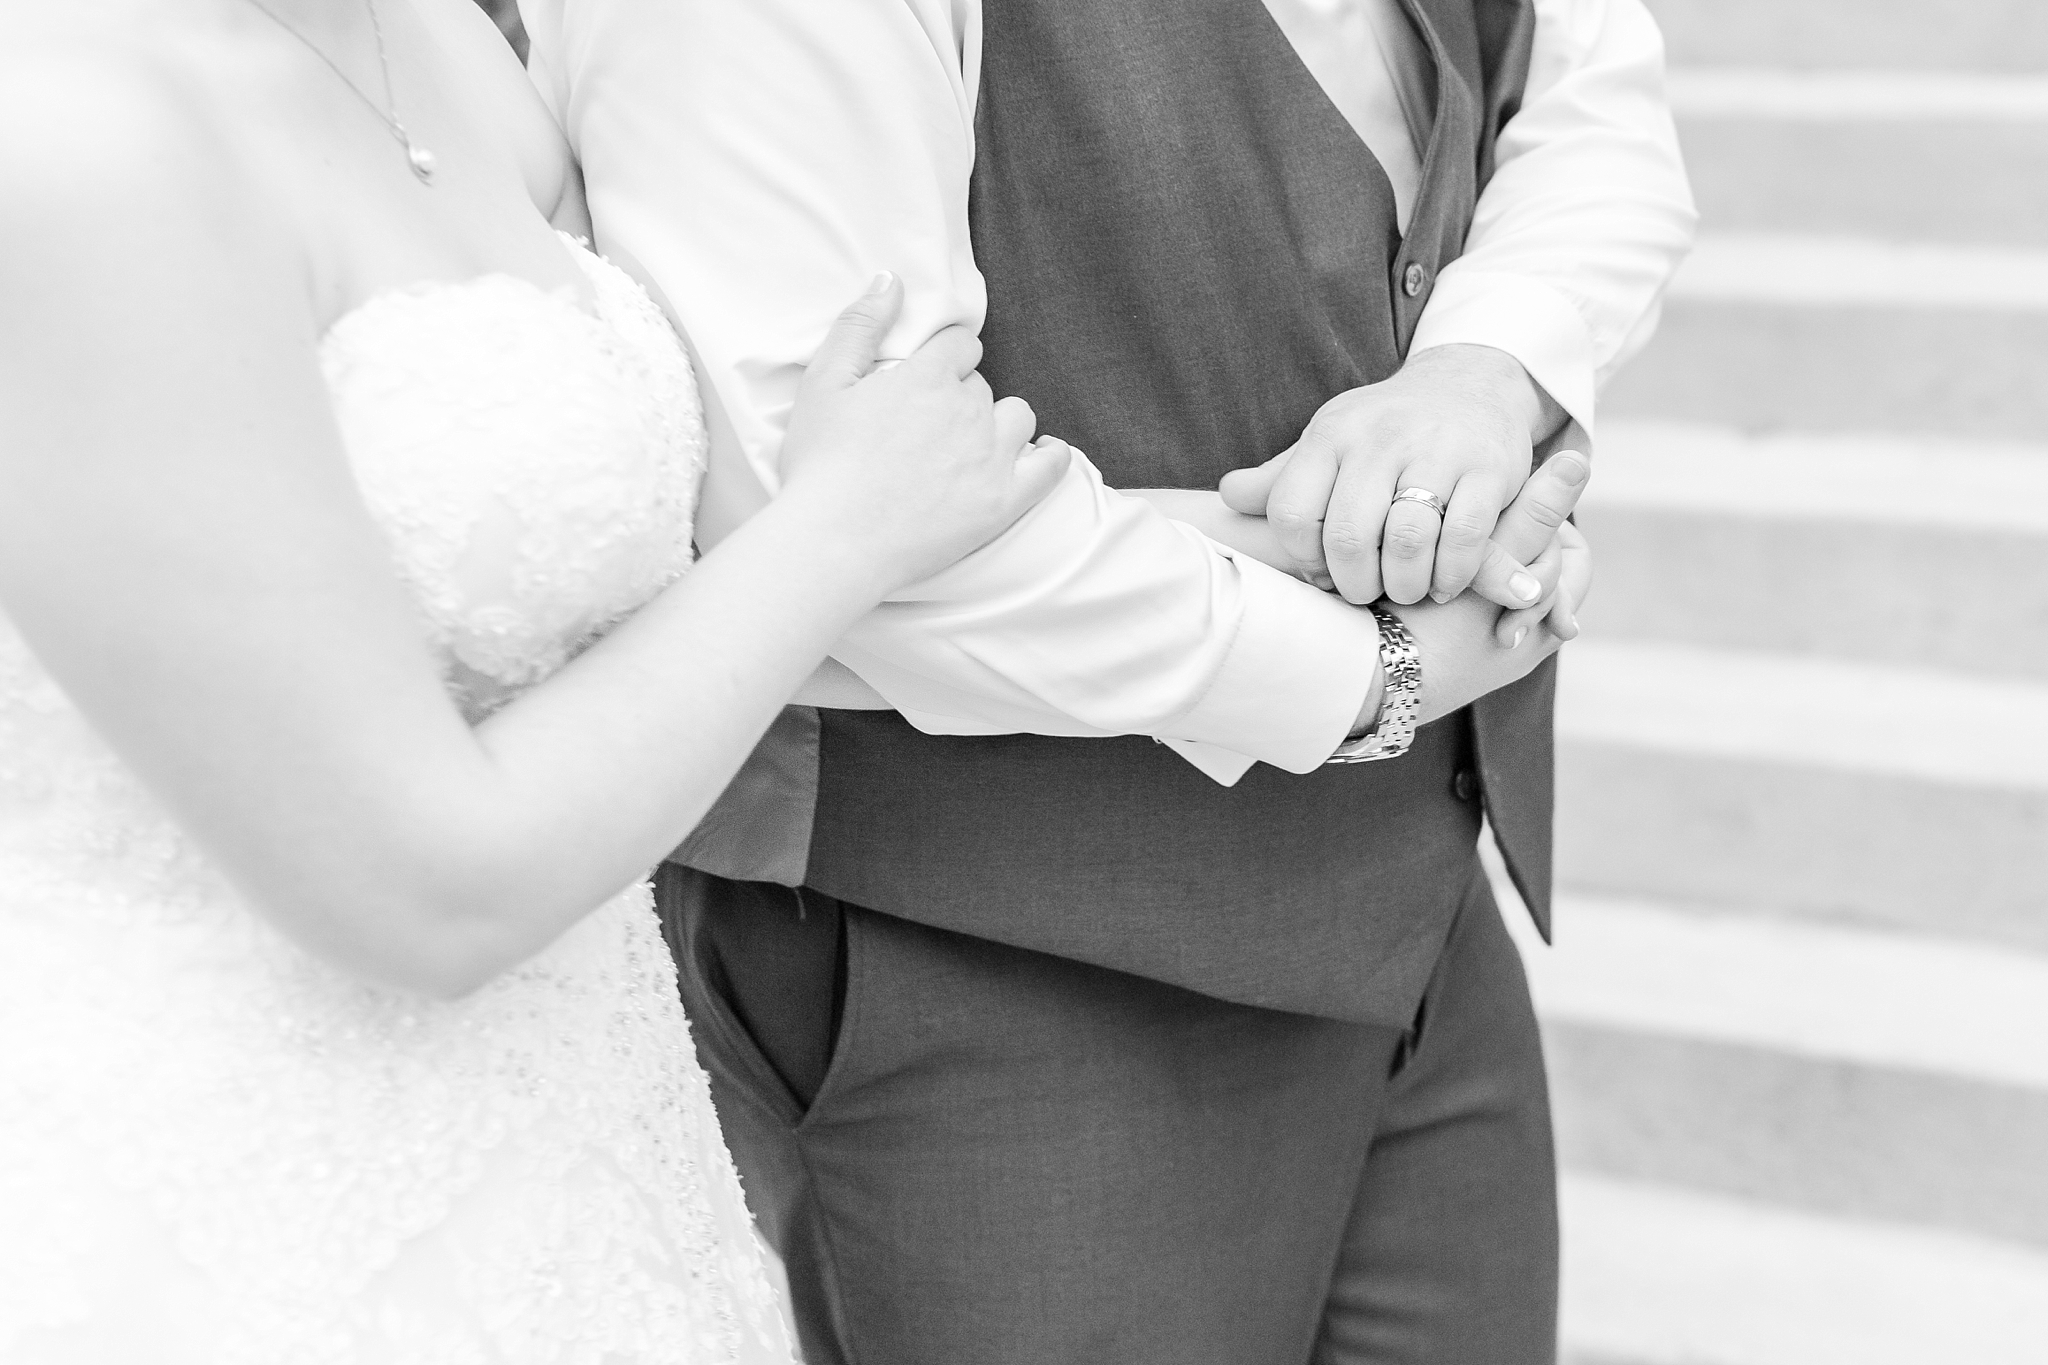 emotional-laid-back-romantic-wedding-photos-at-adrian-college-herrick-chapel-in-adrian-michigan-by-courtney-carolyn-photography_0086.jpg